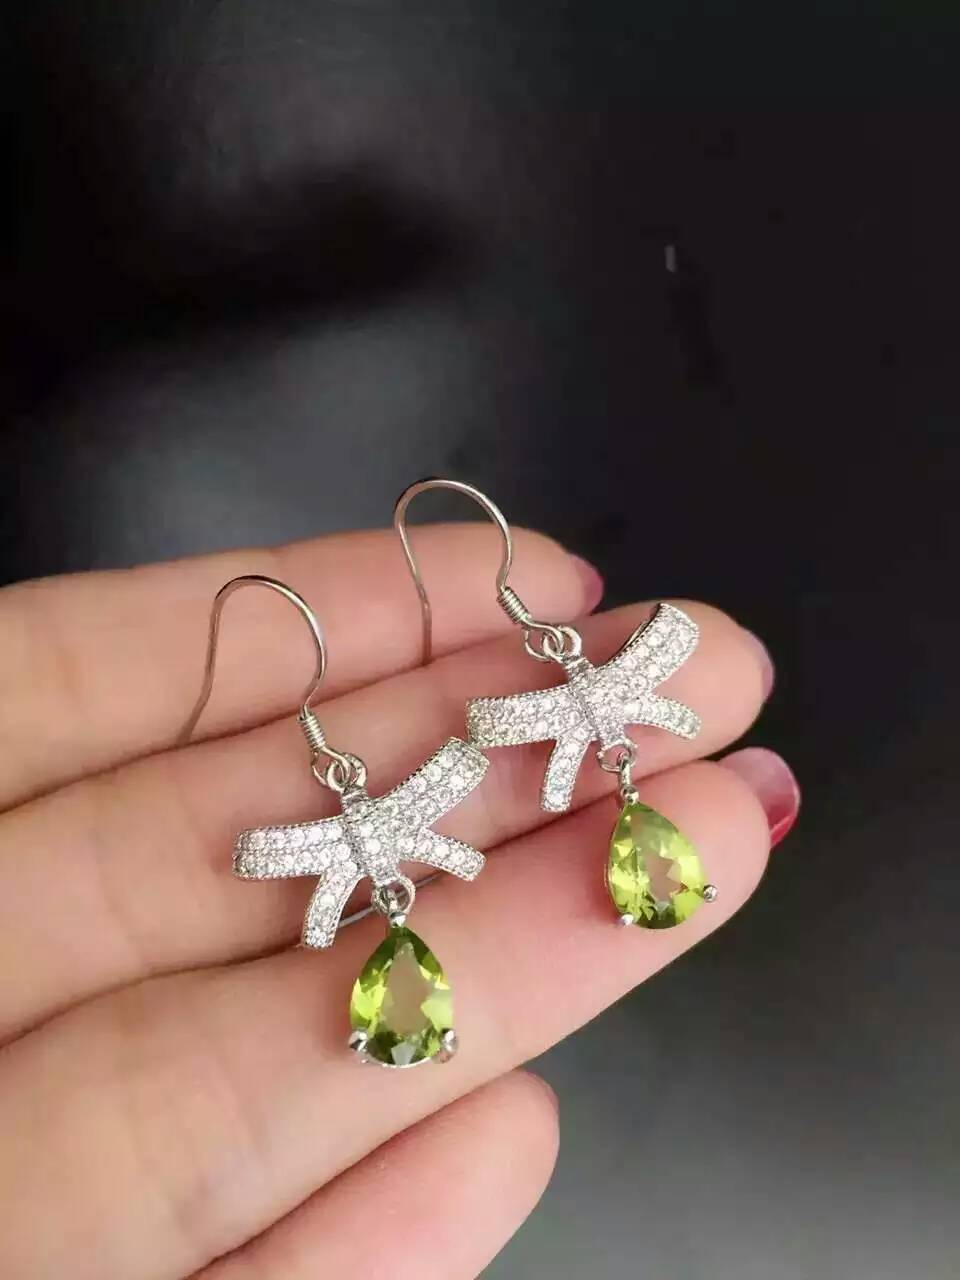 natural olivine drop earrings 925 silver Natural peridot gemstone earring women fashion Butterfly shape drop earrings for party tatkraft кольца fioretto 12 шт